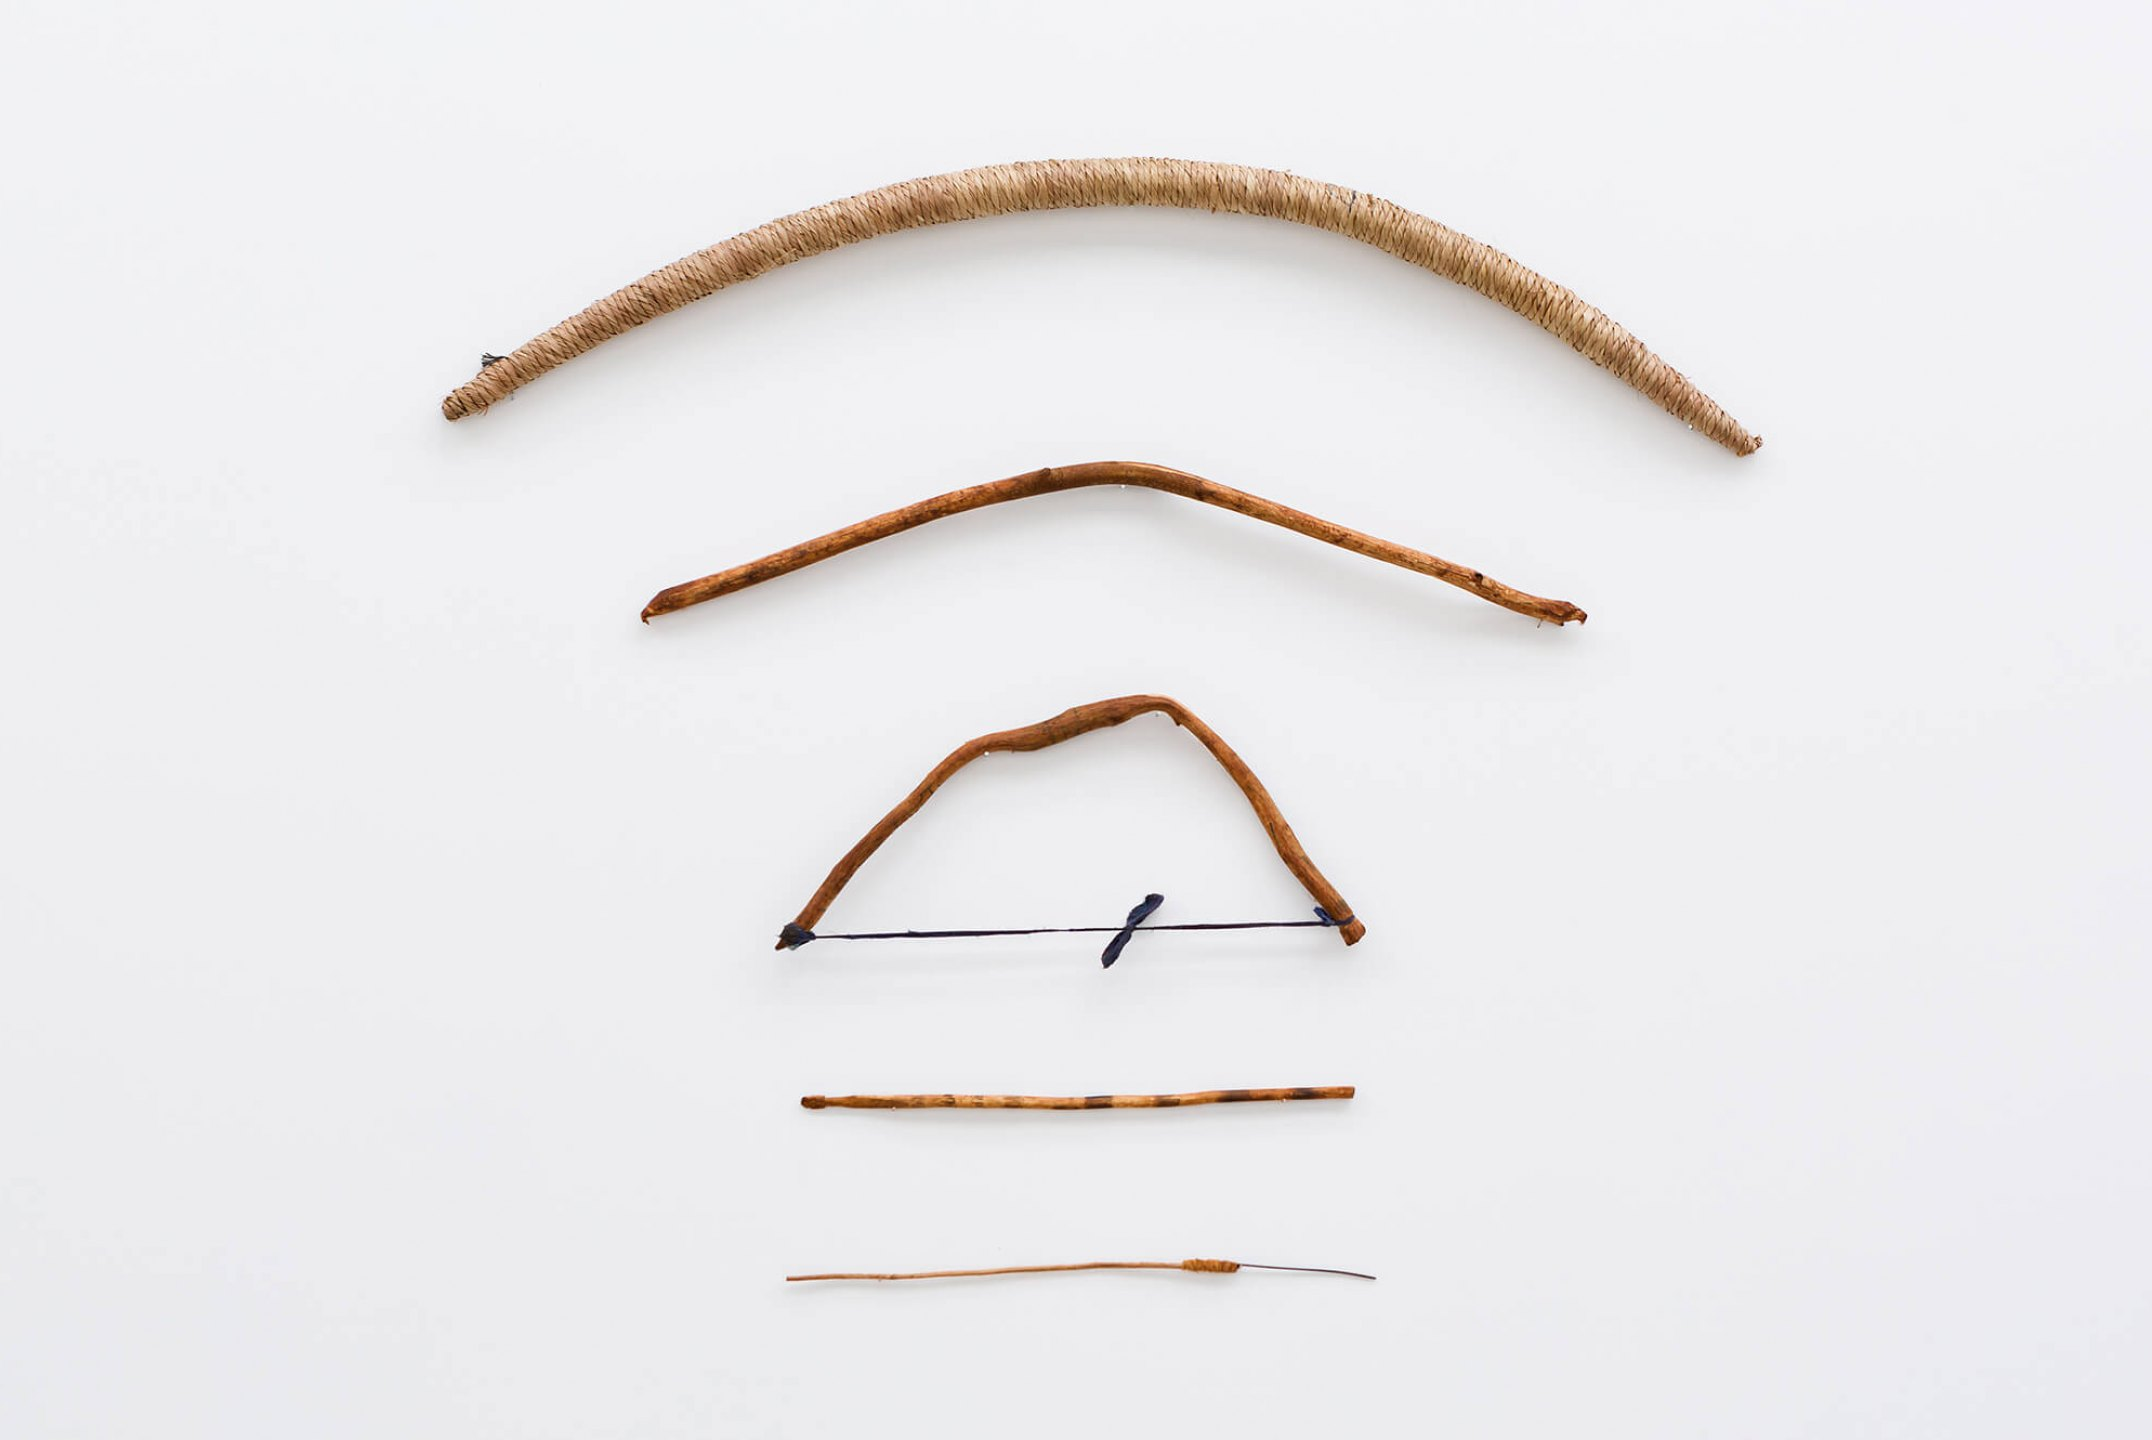 Paulo Nazareth, <em>CA - Arco tabaco</em>, 2013/2014, wood, straw and cotton, 108 × 129 cm - Mendes Wood DM